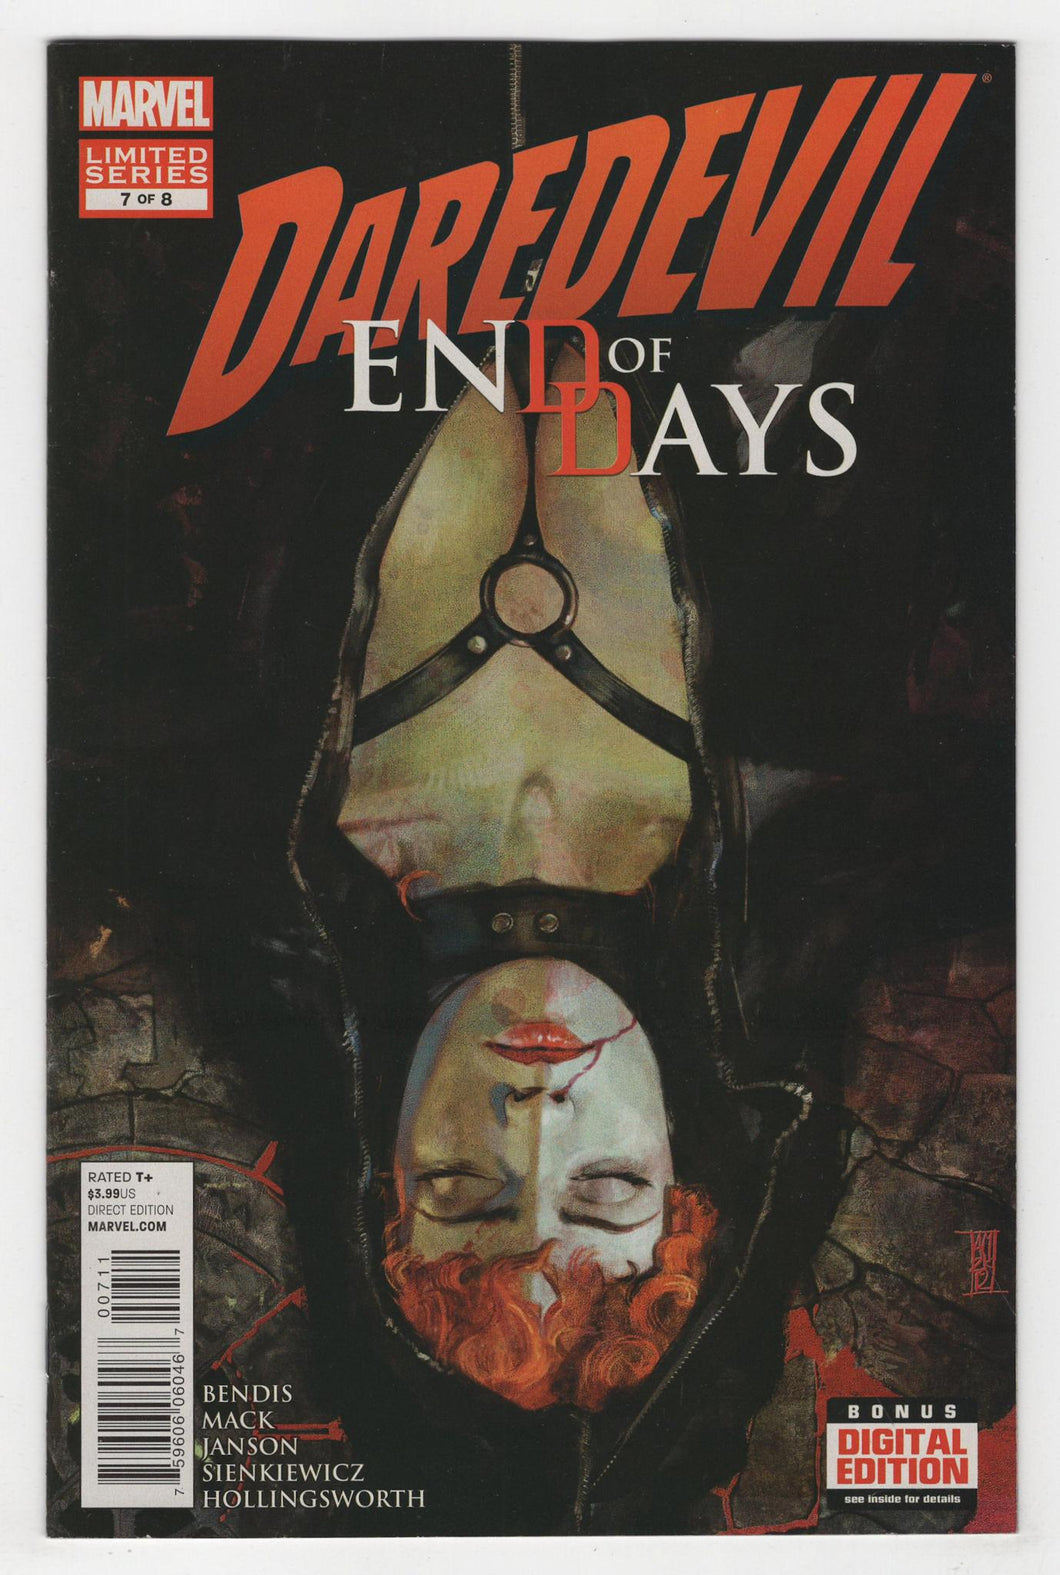 Daredevil End of Days #7 Cover Front